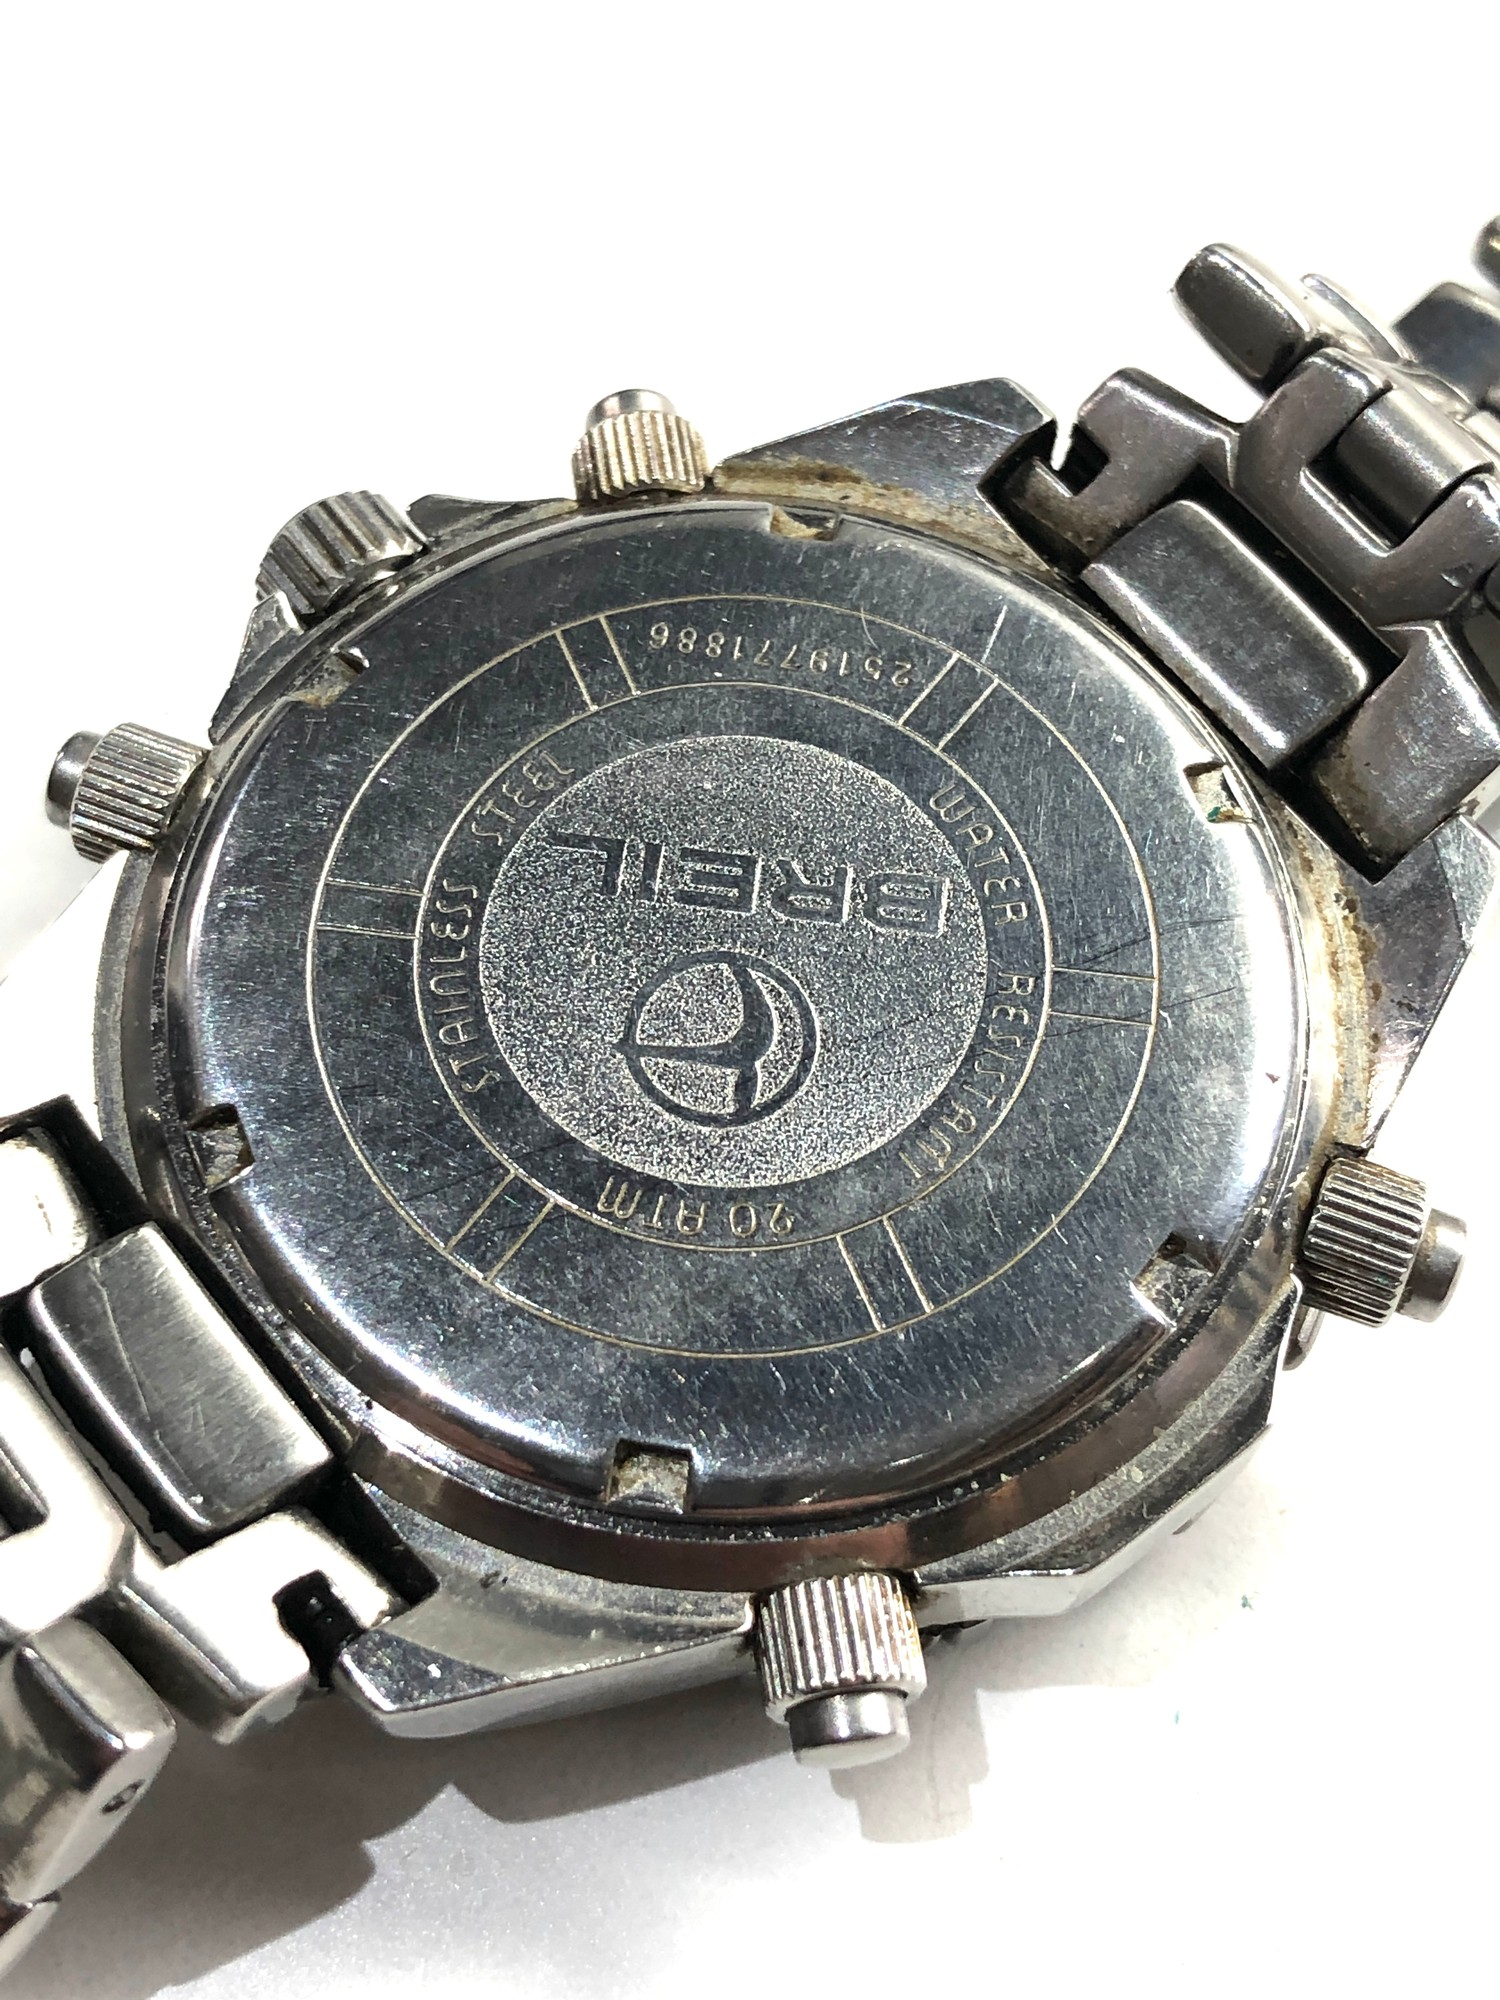 Gents Breil world timer chronograph wristwatch spares or repair - Image 3 of 5